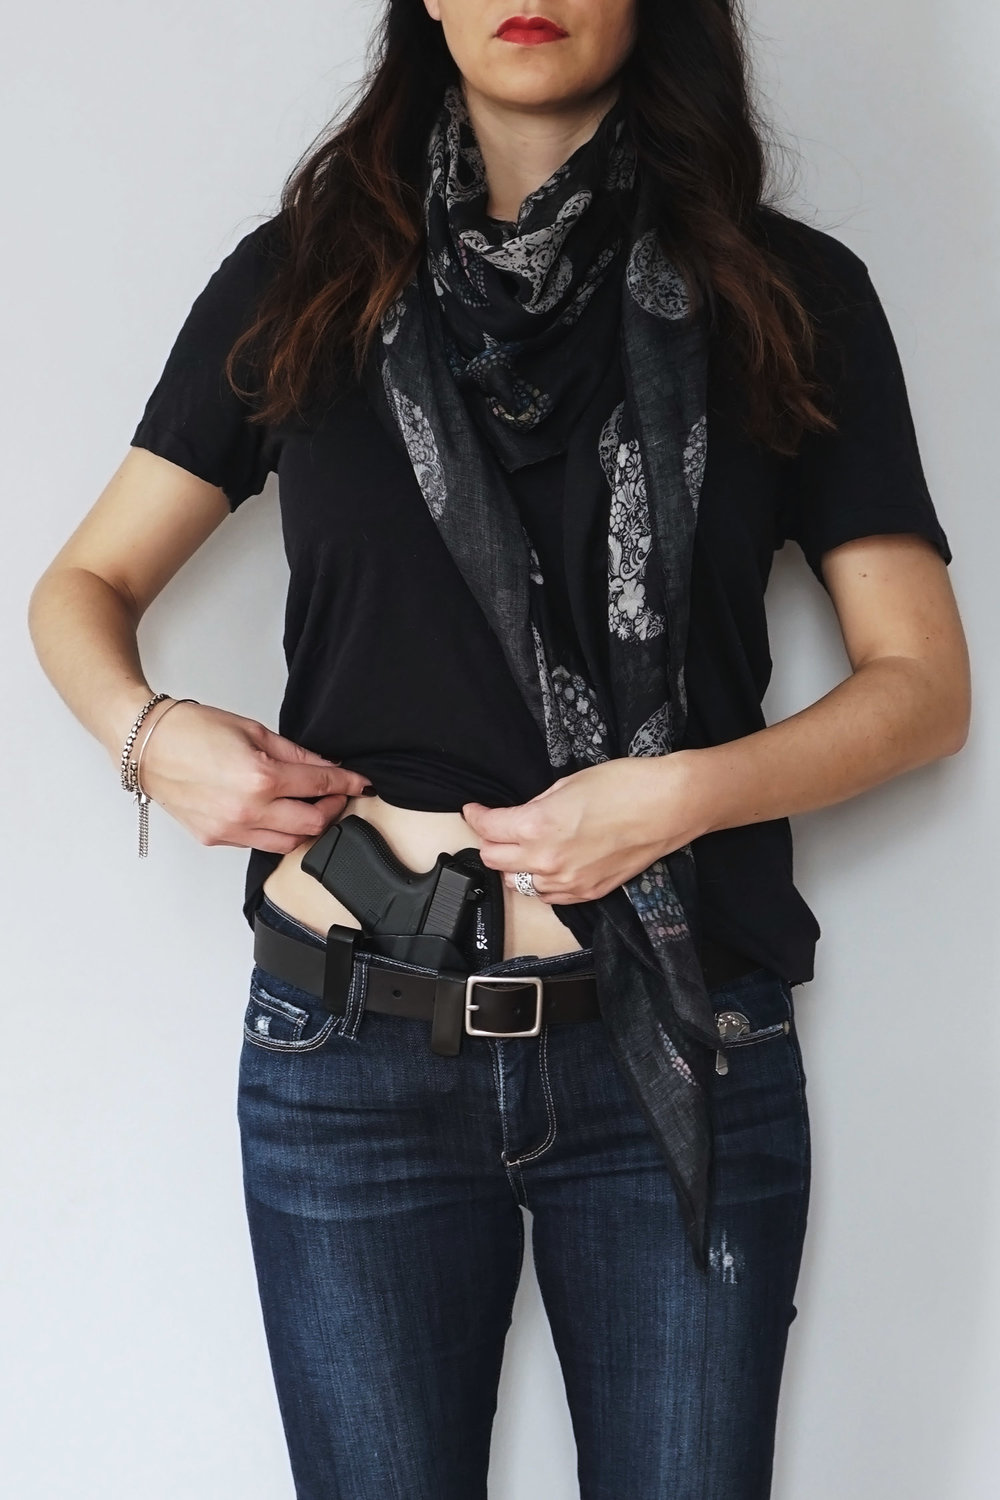 Conceal Carry Glock 43 Summer Outfit